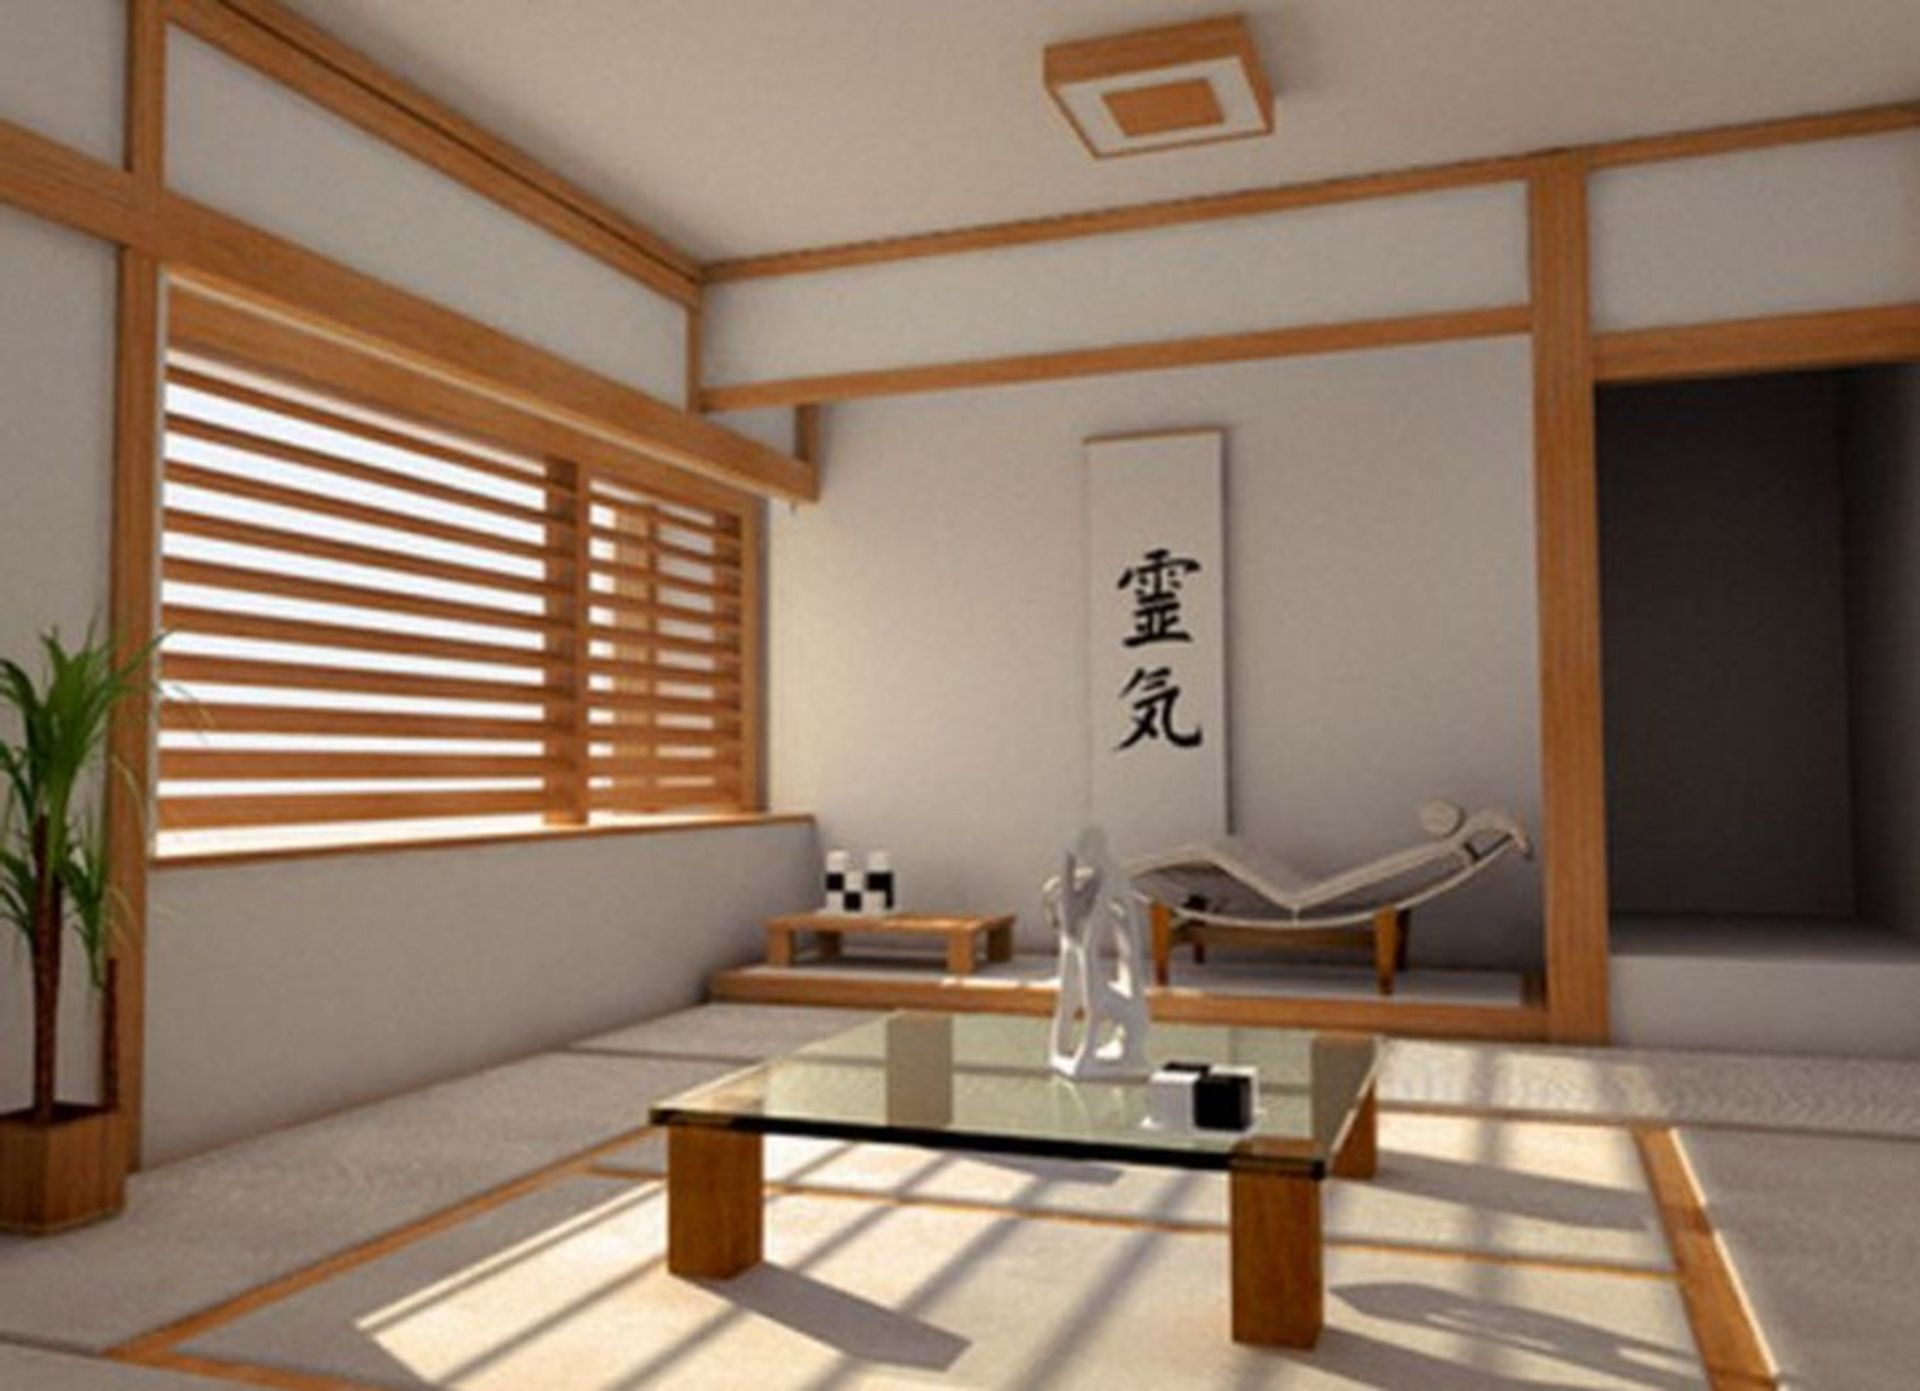 Traditional Japanese Home Design japanese style home plans traditional japanese house design unique traditional Traditional Japanese House Design Plans